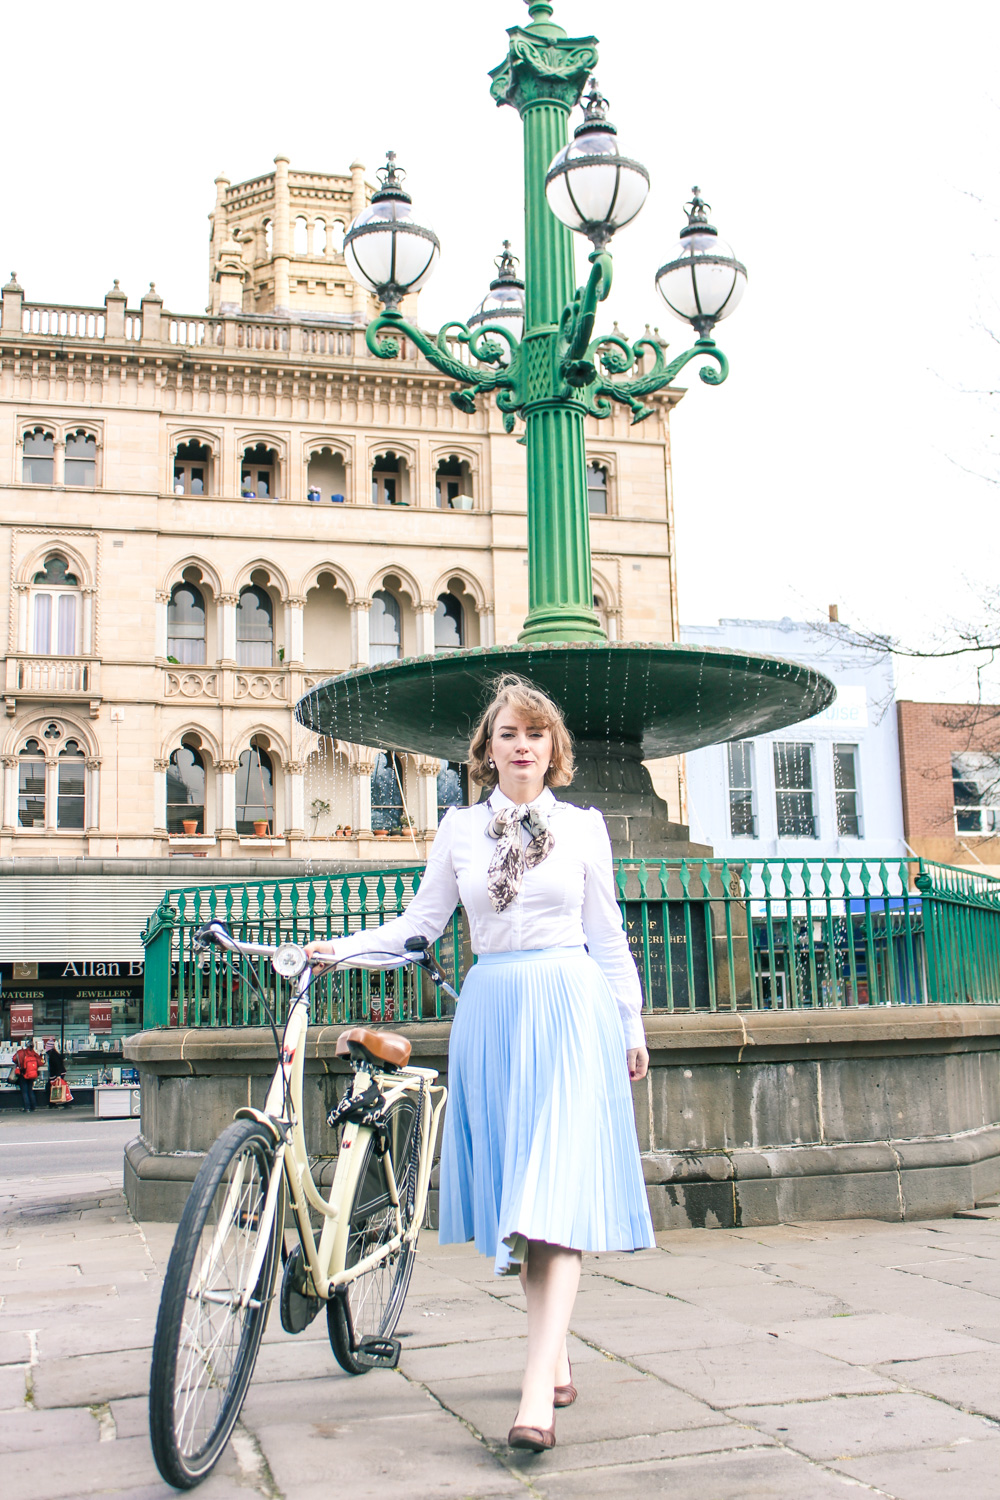 @findingfemme wears pleated leather blue skirt and rides a vintage bike in Ballarat